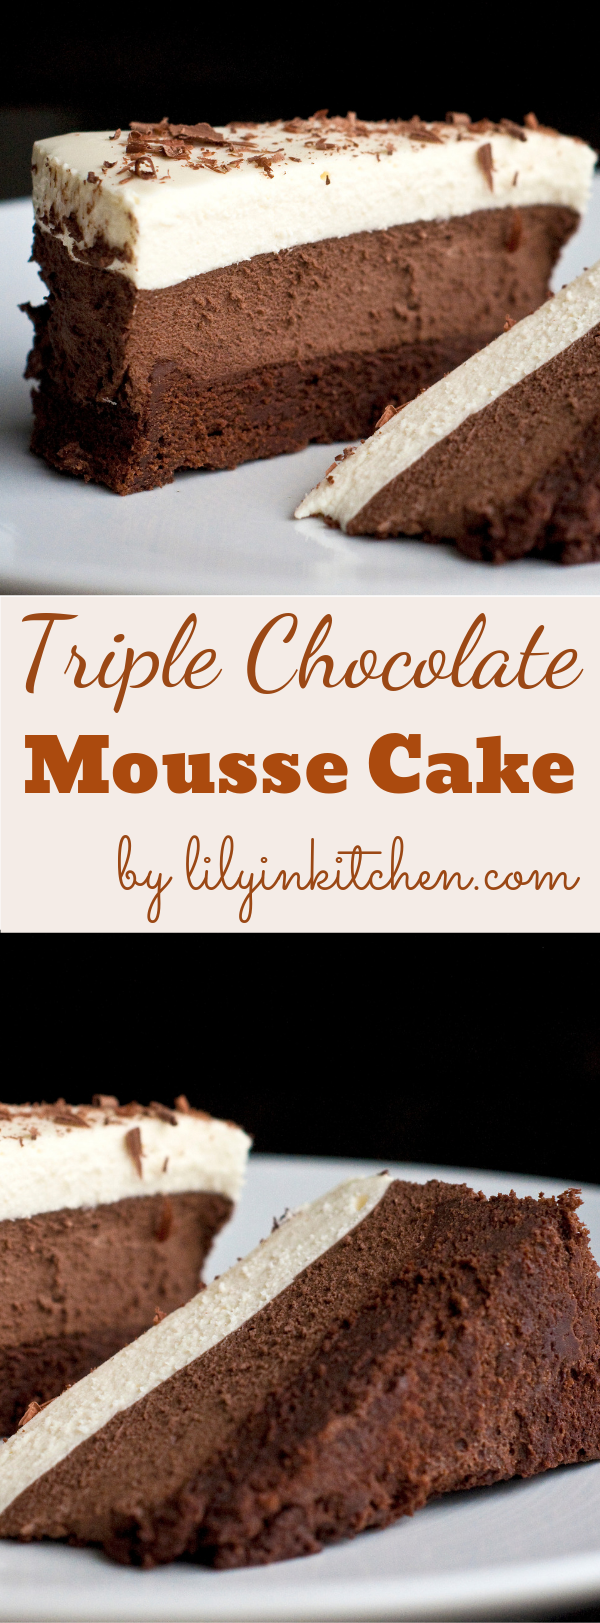 This Triple Chocolate Mousse Cake is one of the most decadent chocolate cake recipe ever. Visit Lily in Kitchen go through the recipe and try now!  chocolate #cakes #recipe